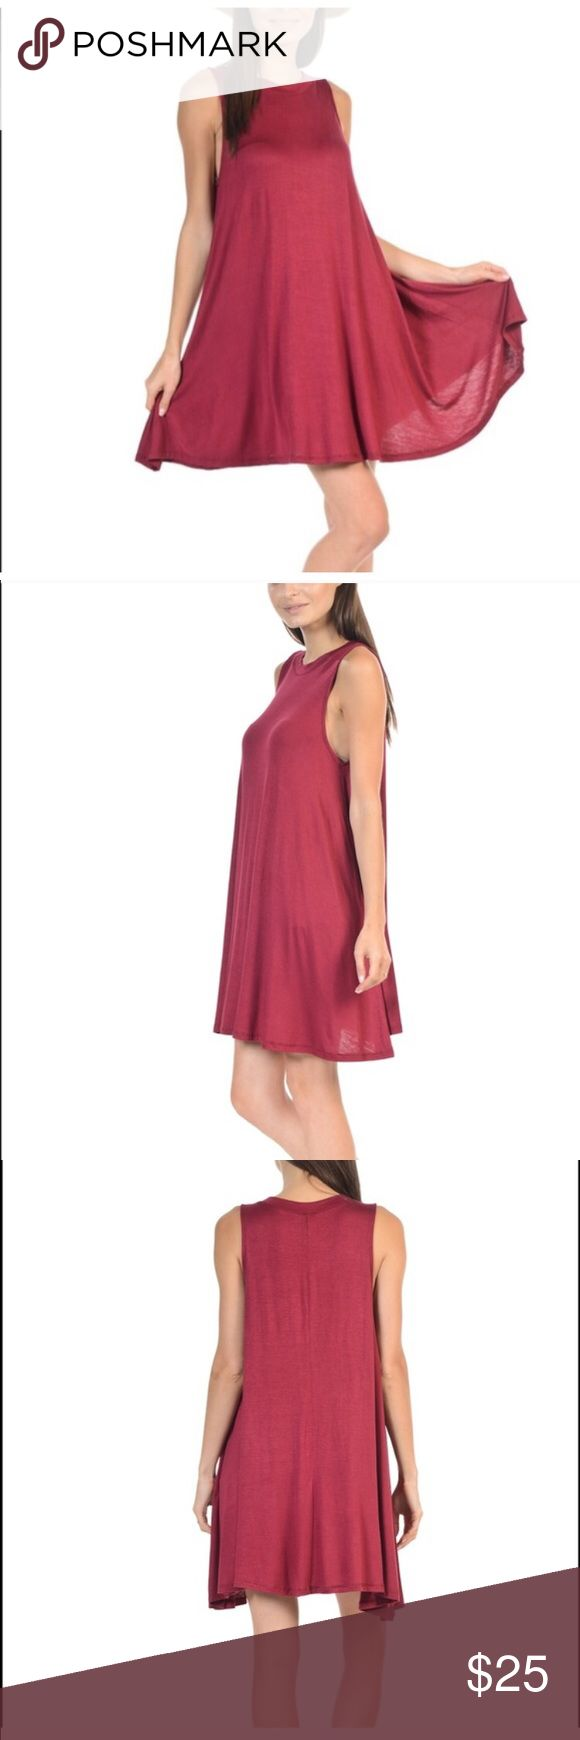 Burgundy sleeveless tshirt dress Burgundy colored sleeveless tshirt dress. Very soft and stretchy material. Perfect staple piece to dress up or down, and to transition all year round. Price is firm. Dresses